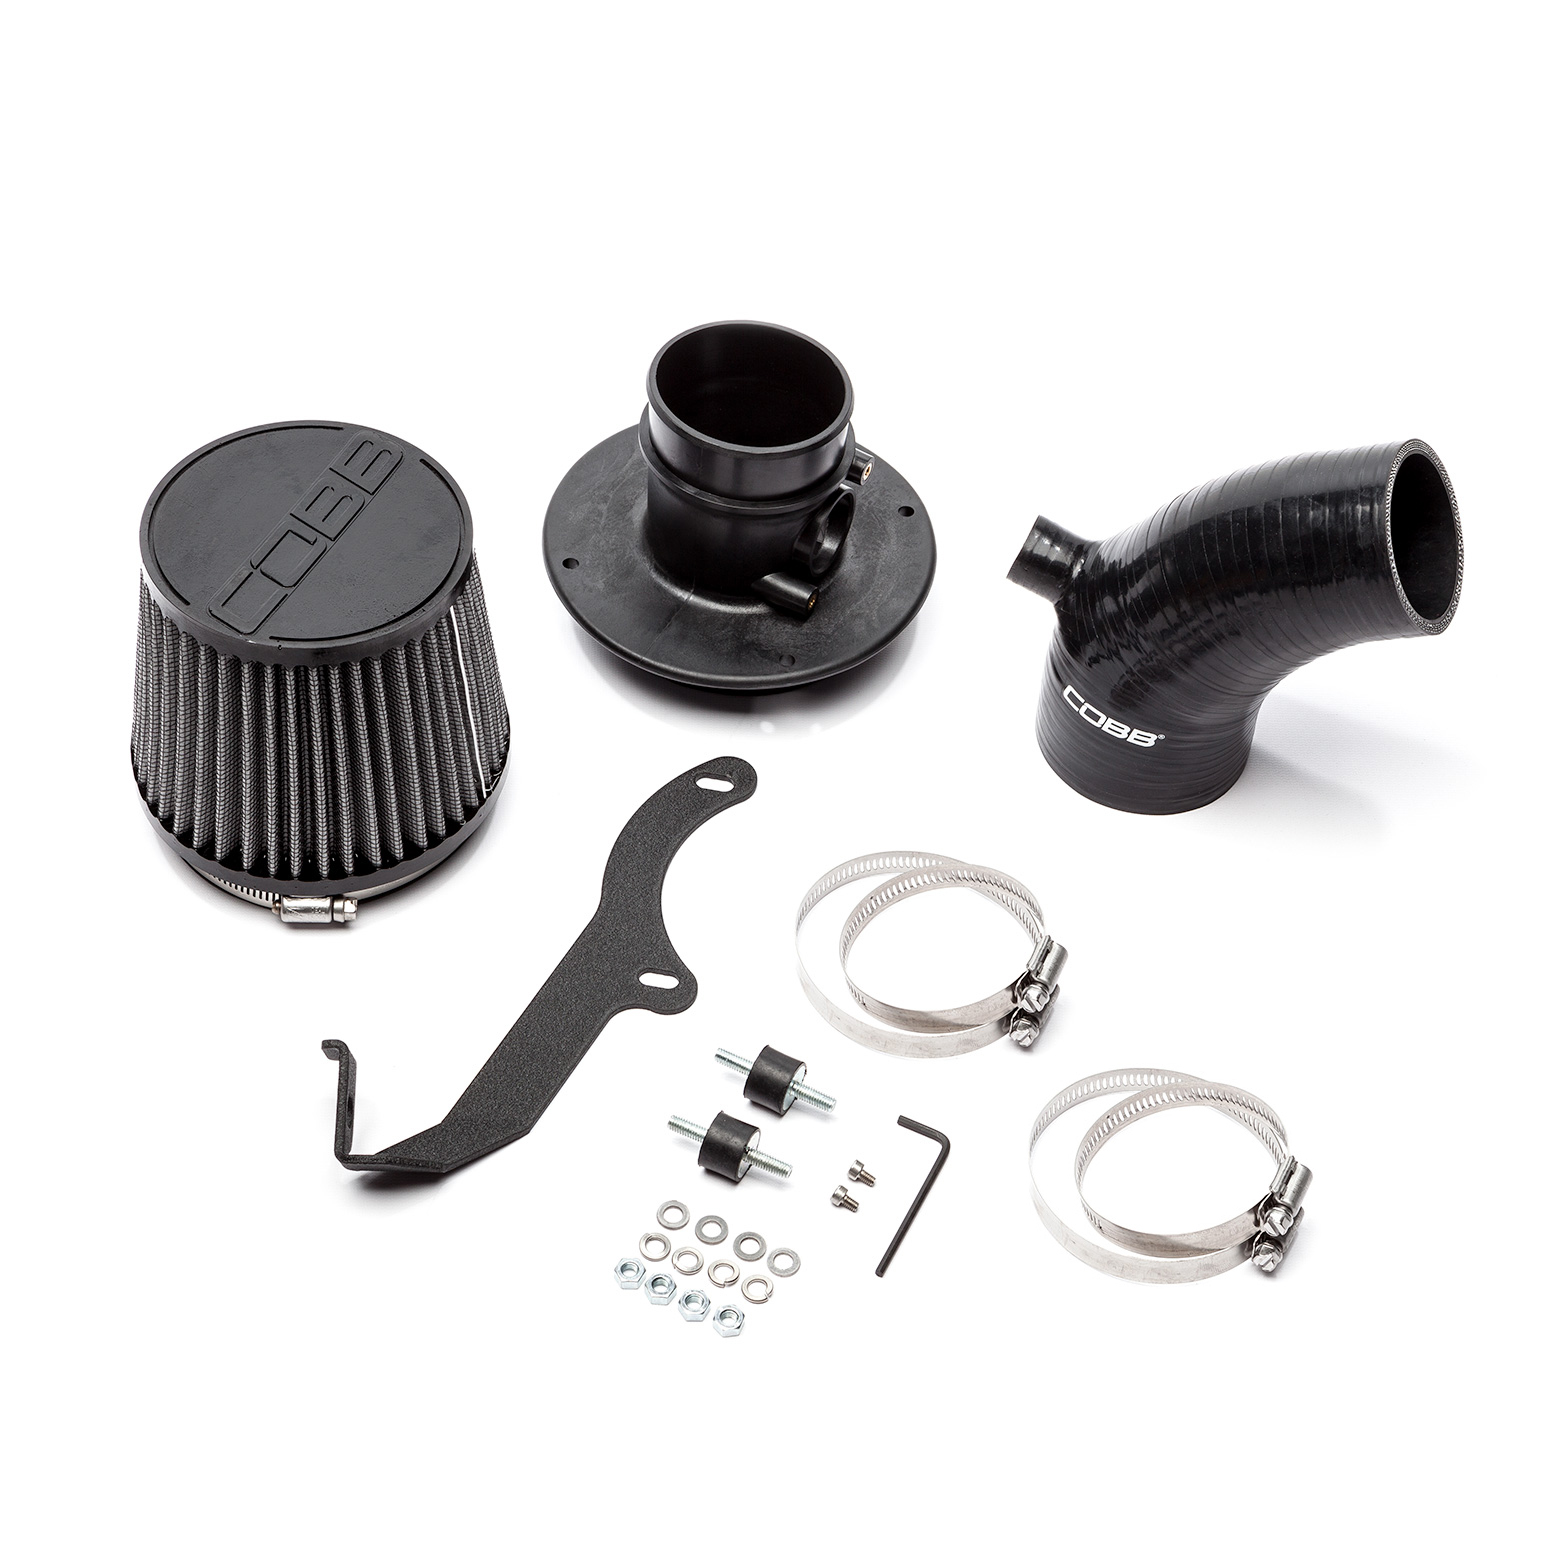 Mazdaspeed3 Stage 3 Power Package Gen2 Mazdaspeed 2010-2013